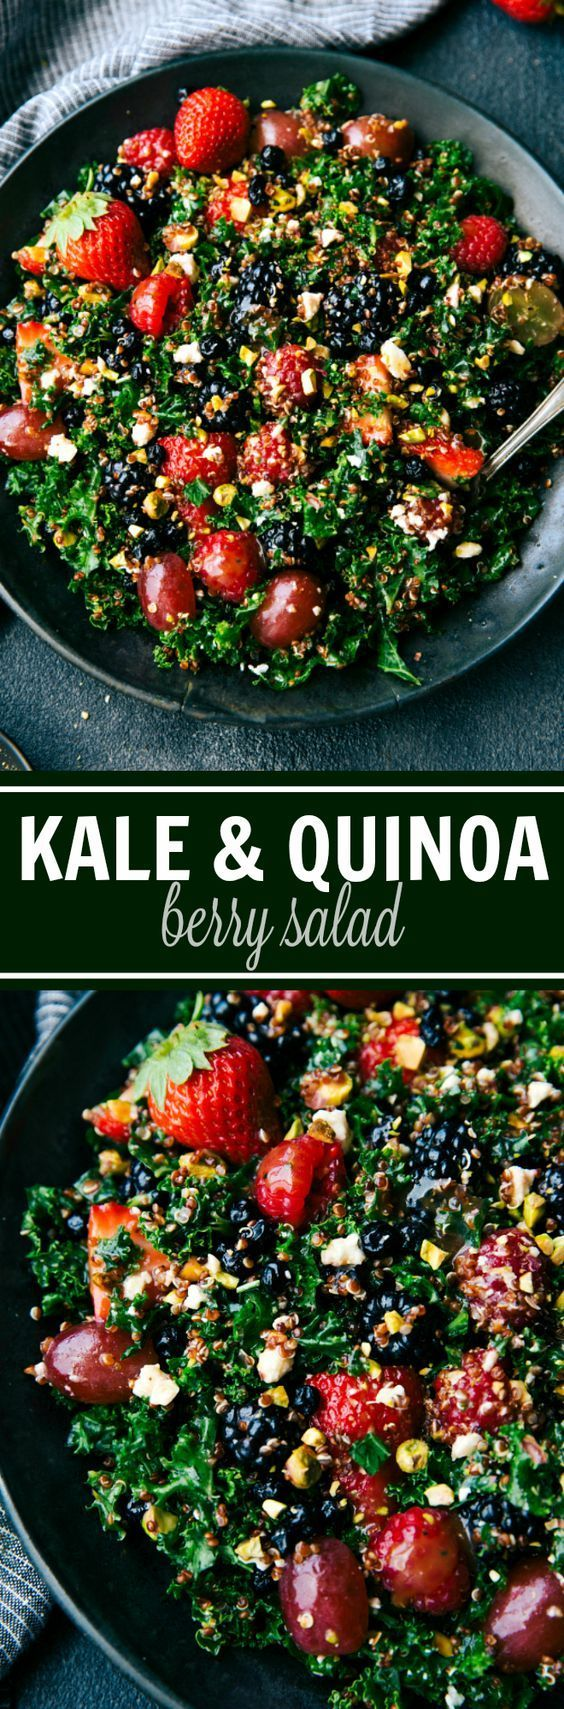 A powerhouse delicious salad made with quinoa, kale, fresh fruit, feta cheese, crushed pistachios, and dried blueberries. Recipe from chelseasmessyapron.com